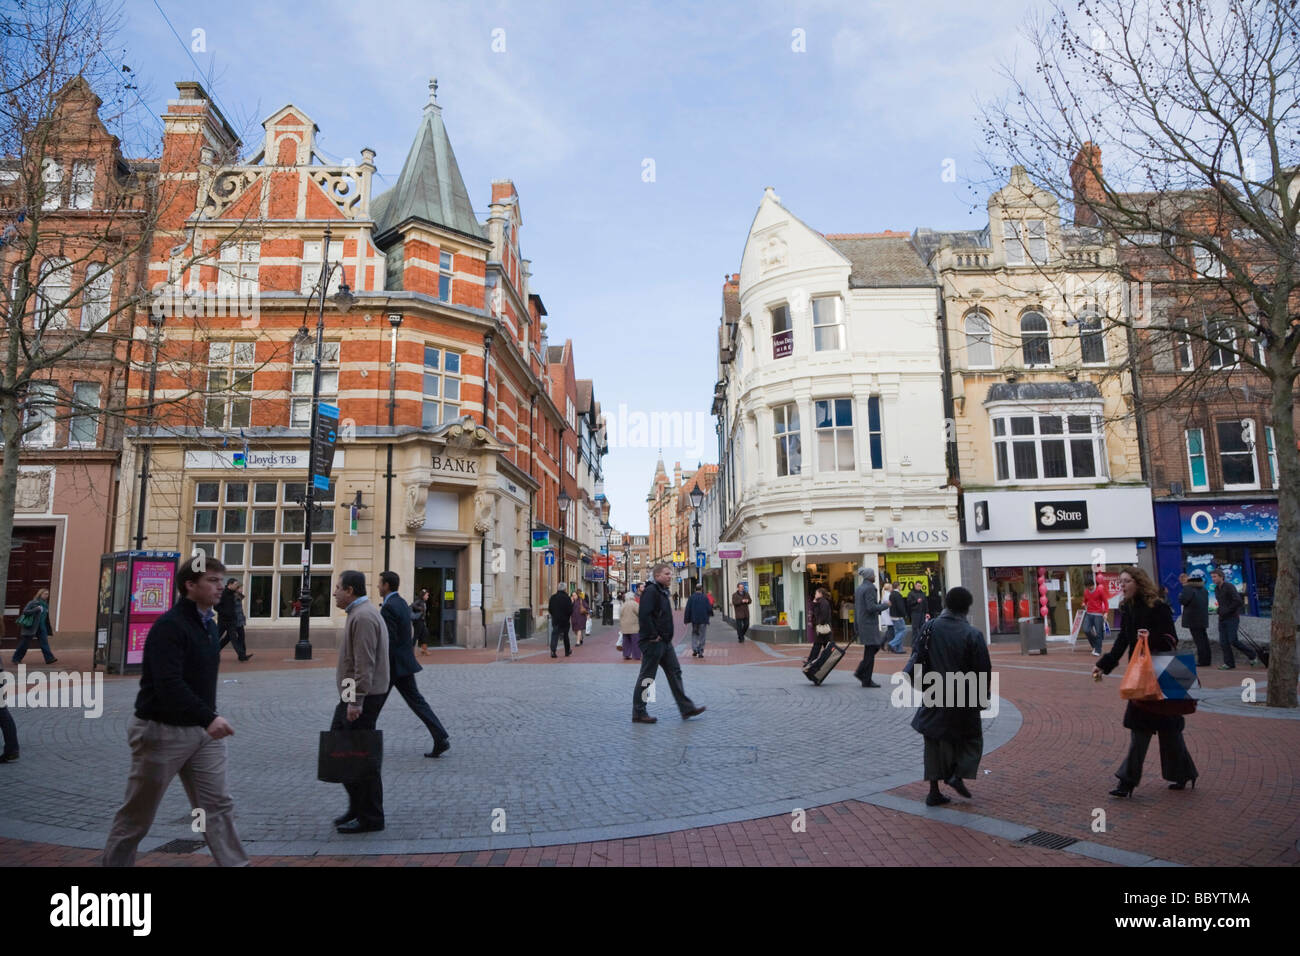 Cross Street from Broad Street, Reading, Berkshire, United Kingdom, Europe - Stock Image